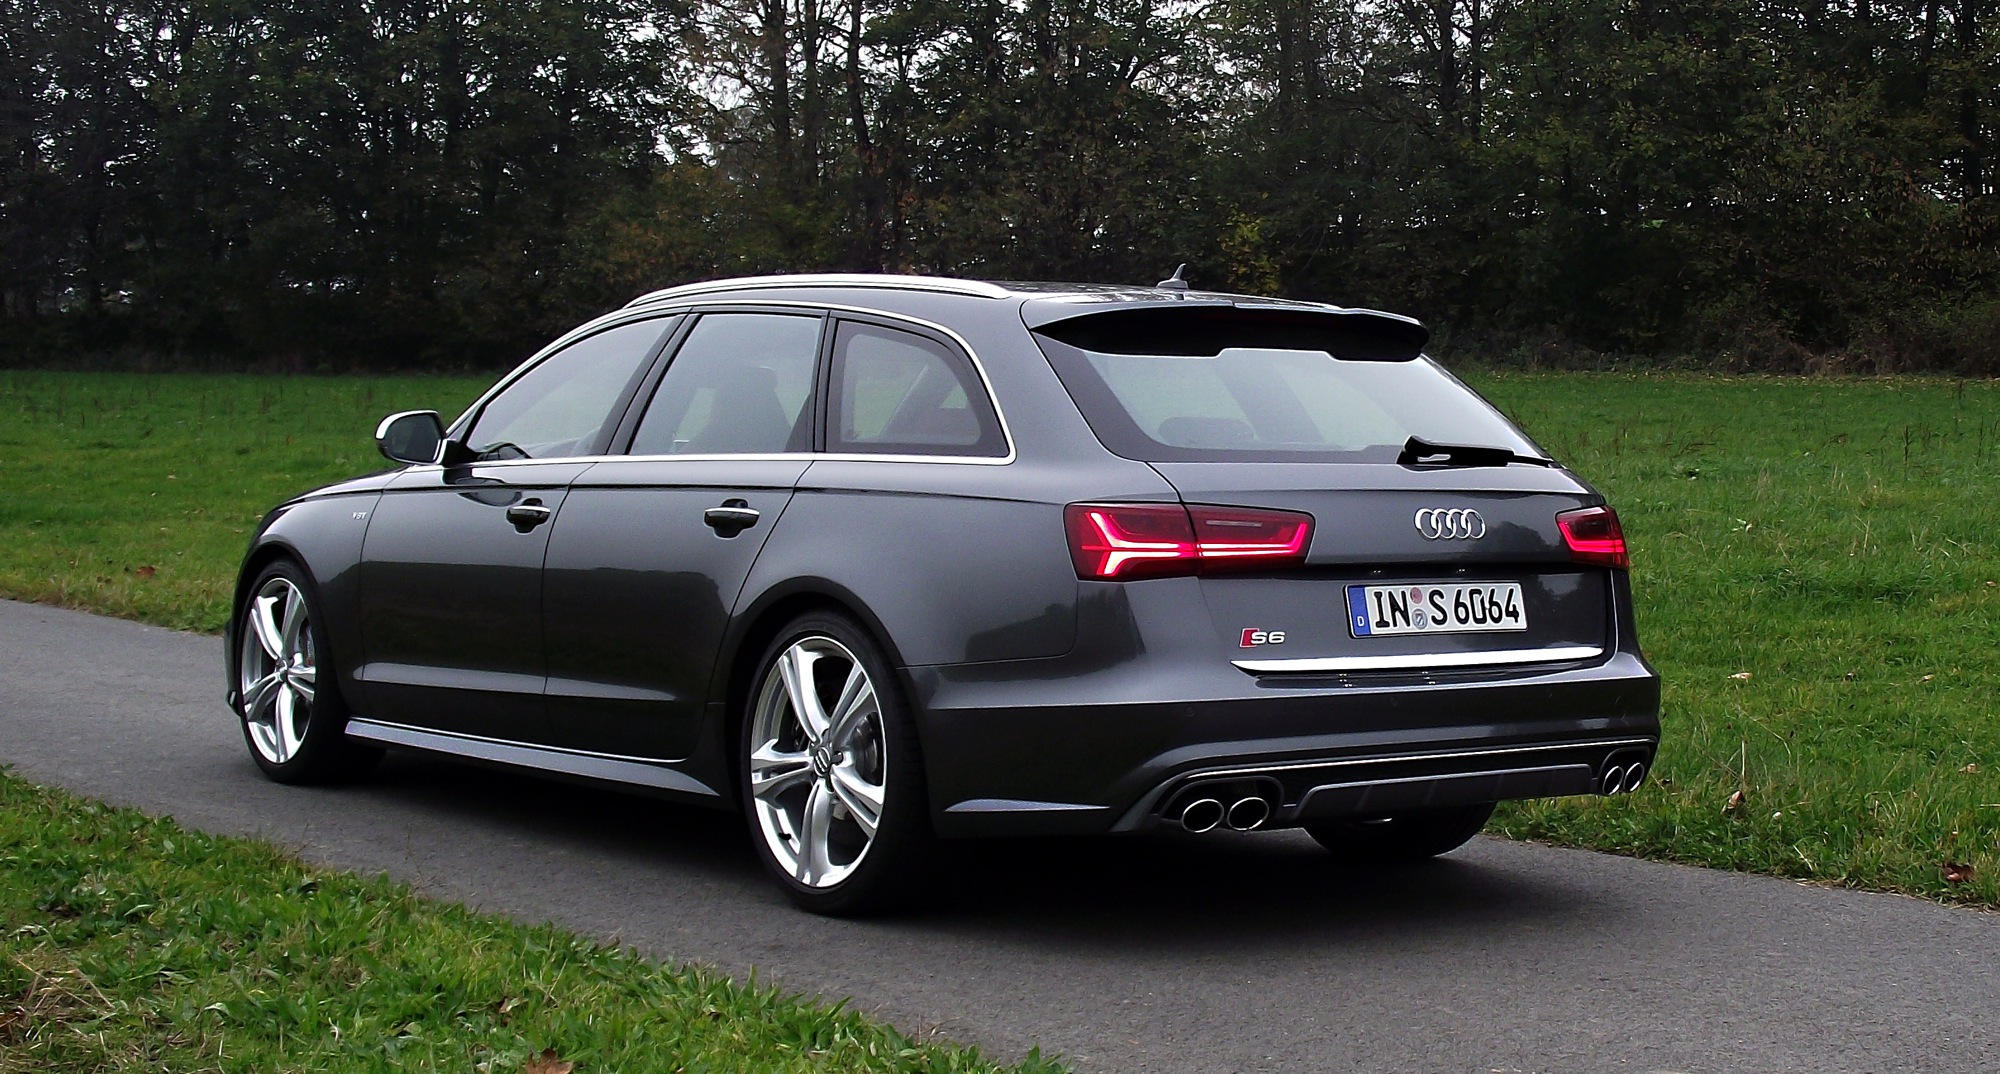 Audi A6 Car Technical Data Car Specifications Vehicle Fuel